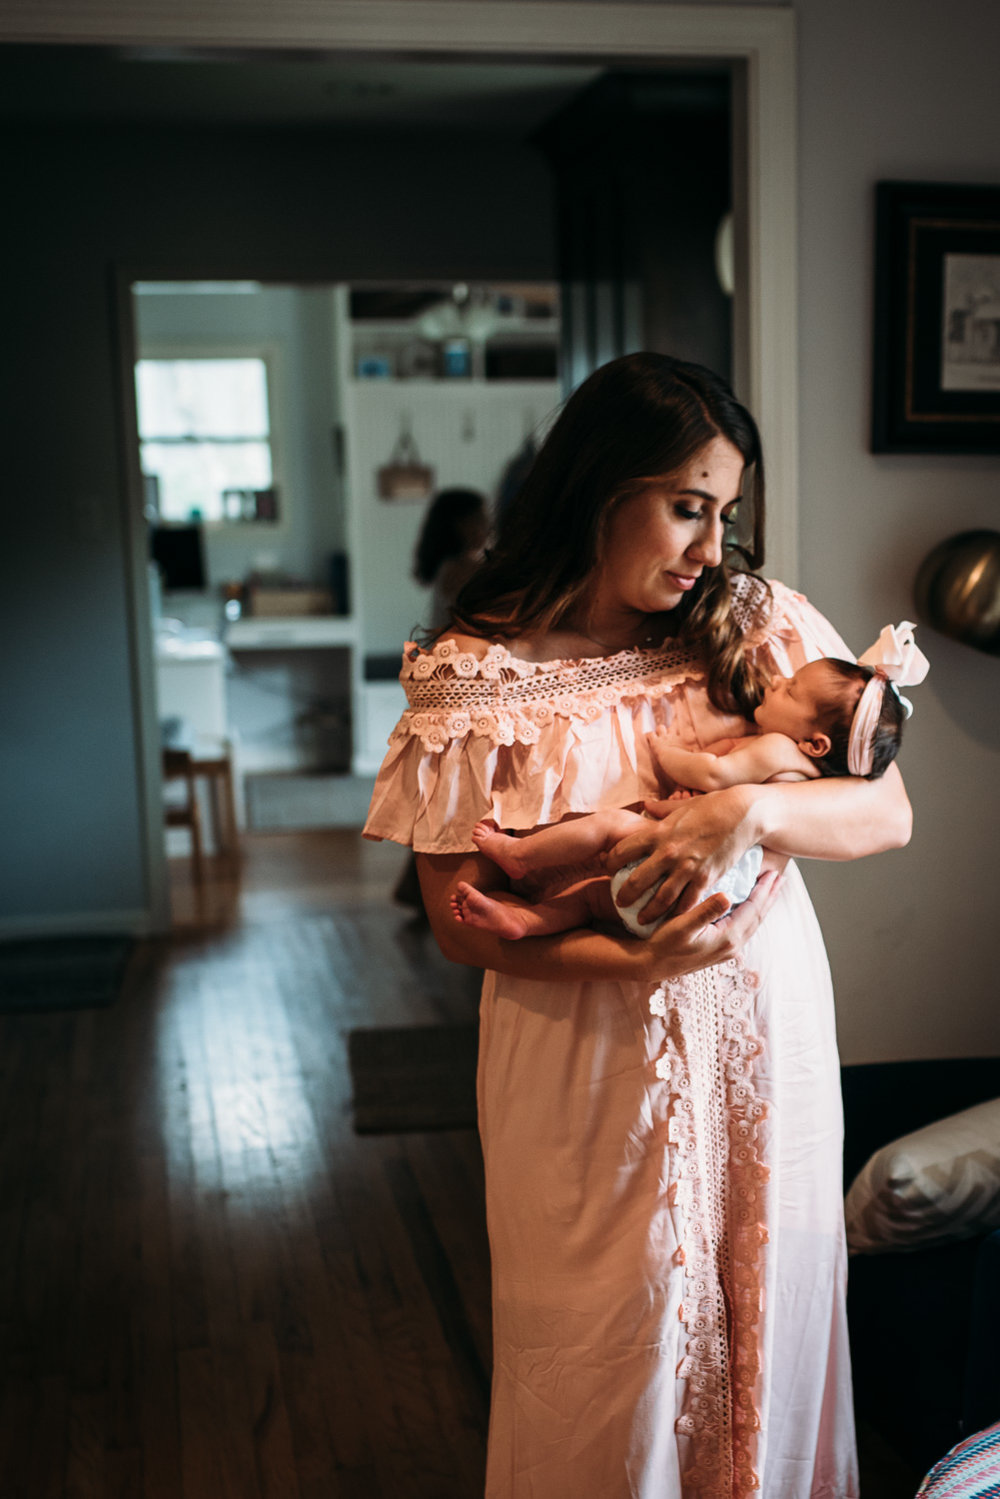 Abby Kennan Photography_Abby Kennan_San Antonio Newborn Photographer_San Antonio Photographer_San Antonio Lifestyle Newborn Photographer_Newborn -10.jpg